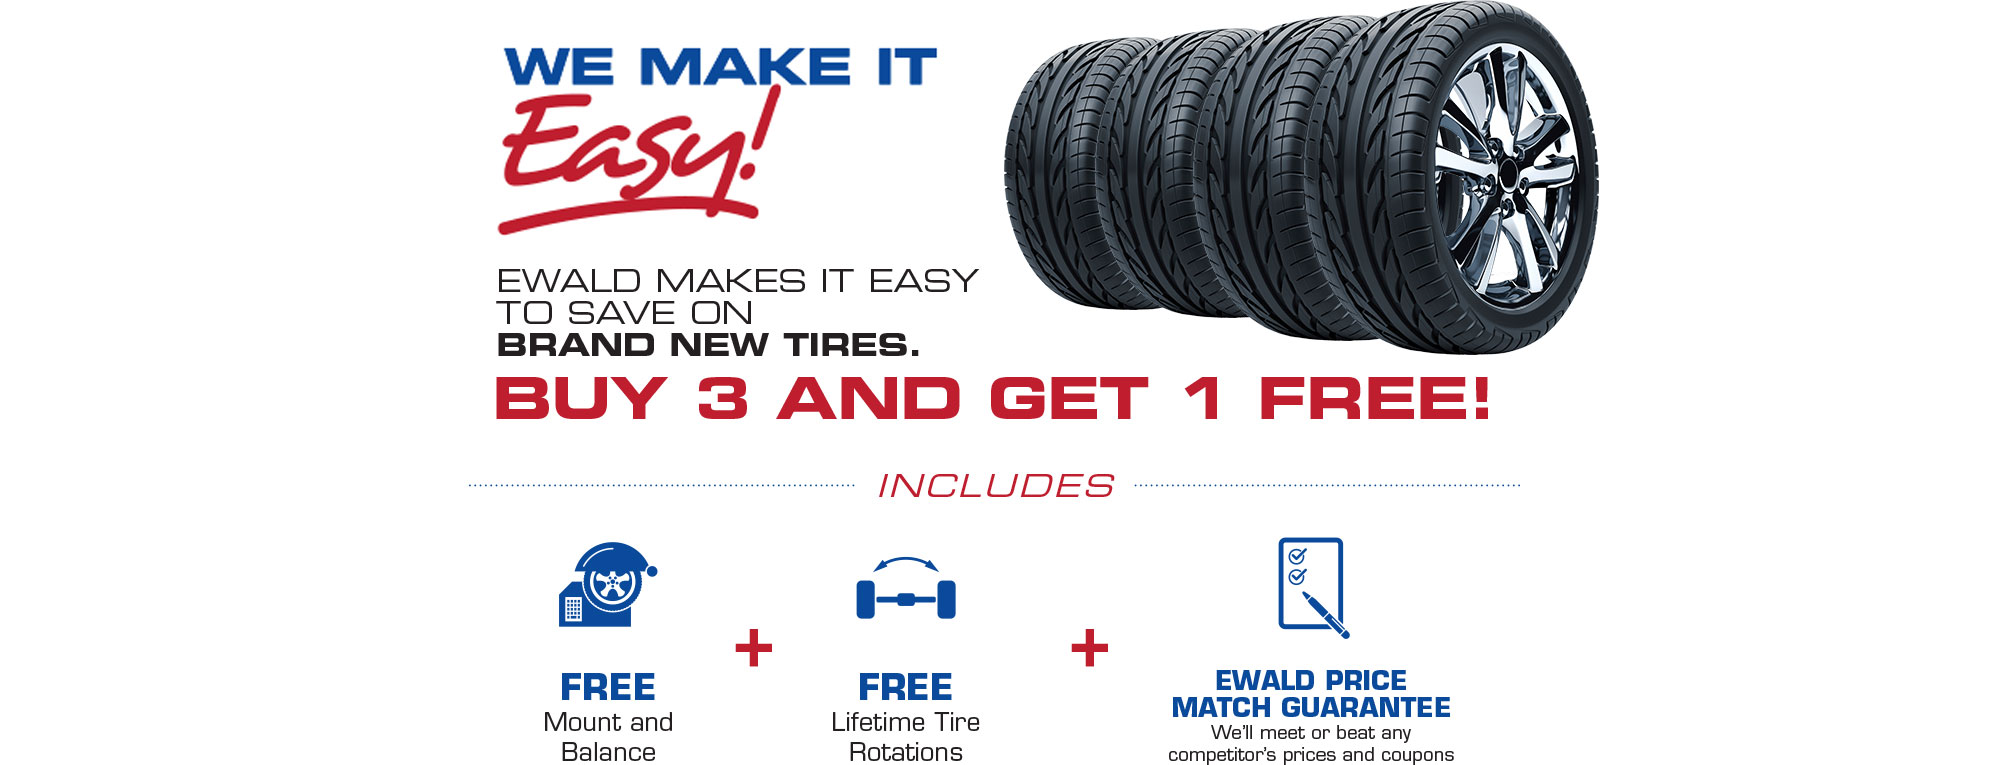 Ewald Chrysler Dodge Jeep Ram Makes It Easy To Save On Tires. Tires